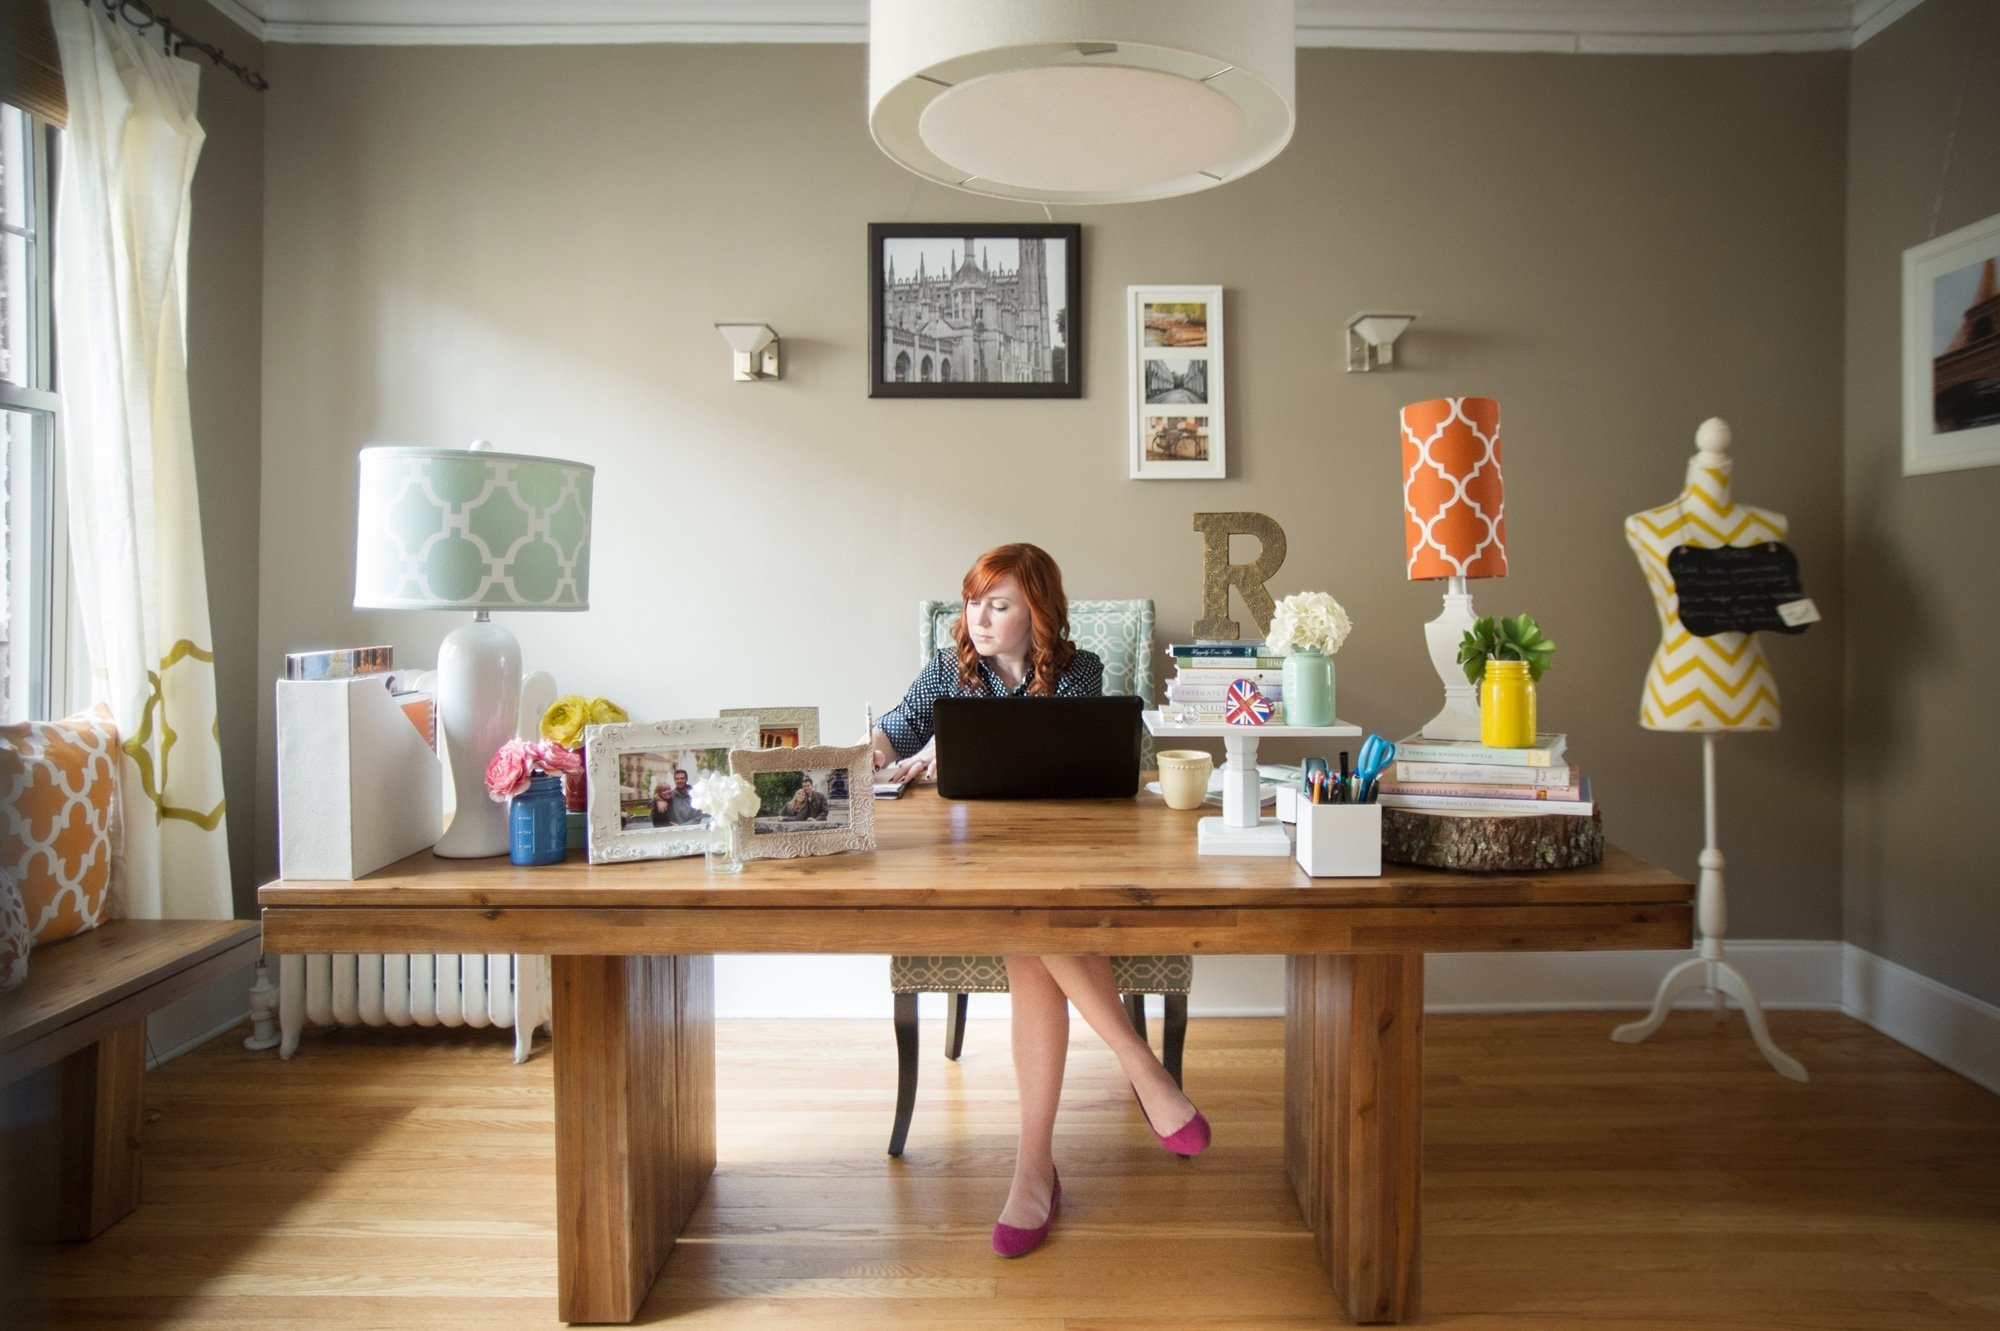 10 Most Popular Work From Home Ideas 2013 inside peek at our bright work space matchmade event co 2020